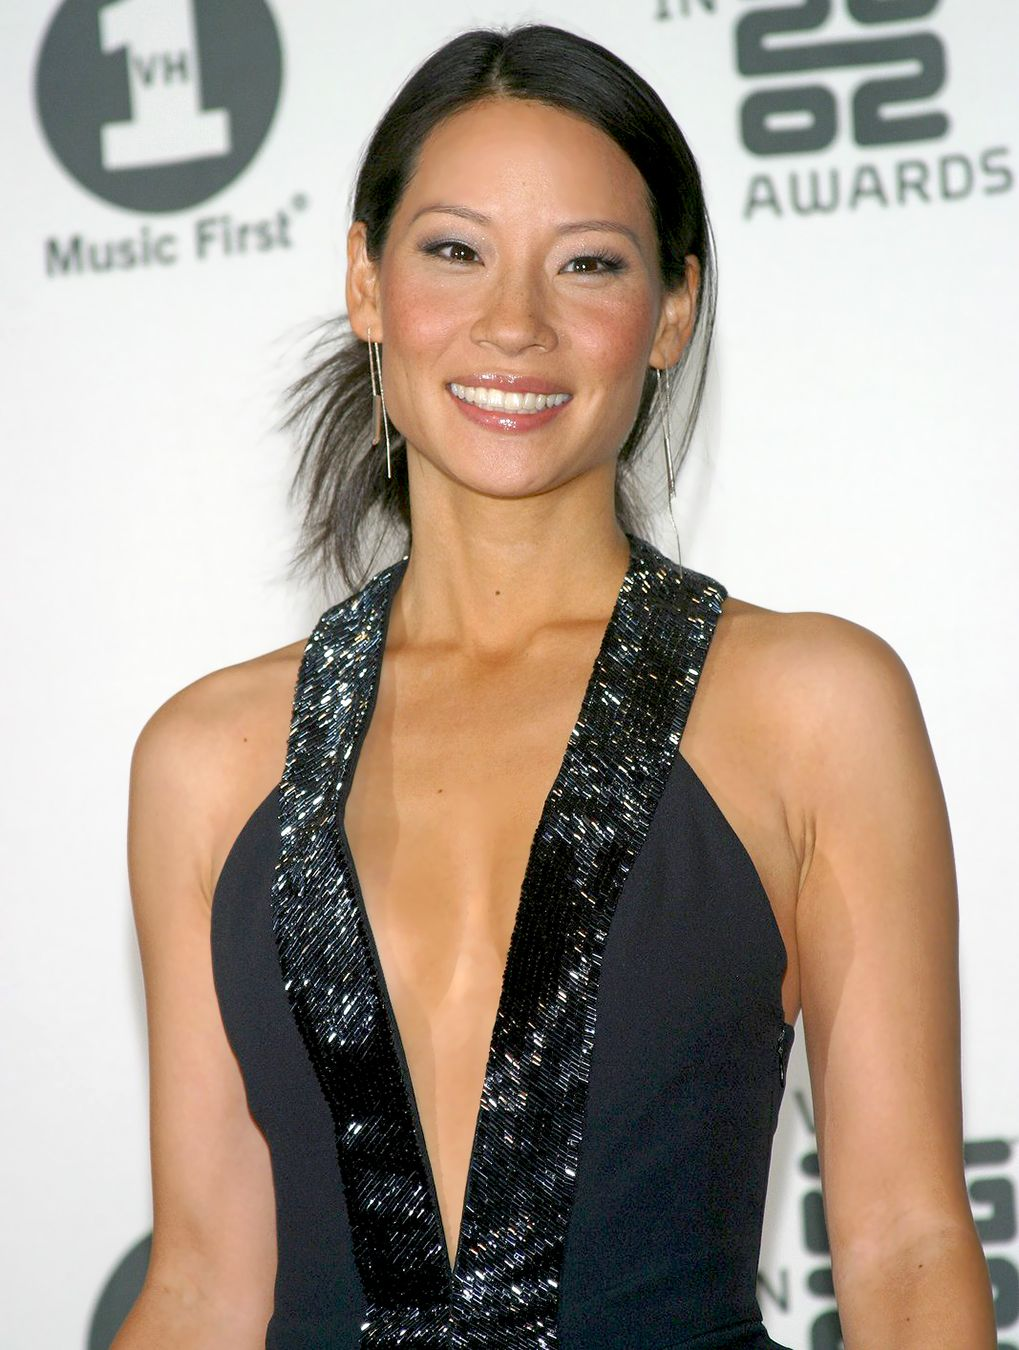 Lucy Liu nudes (61 photos), Sexy, Cleavage, Instagram, butt 2019